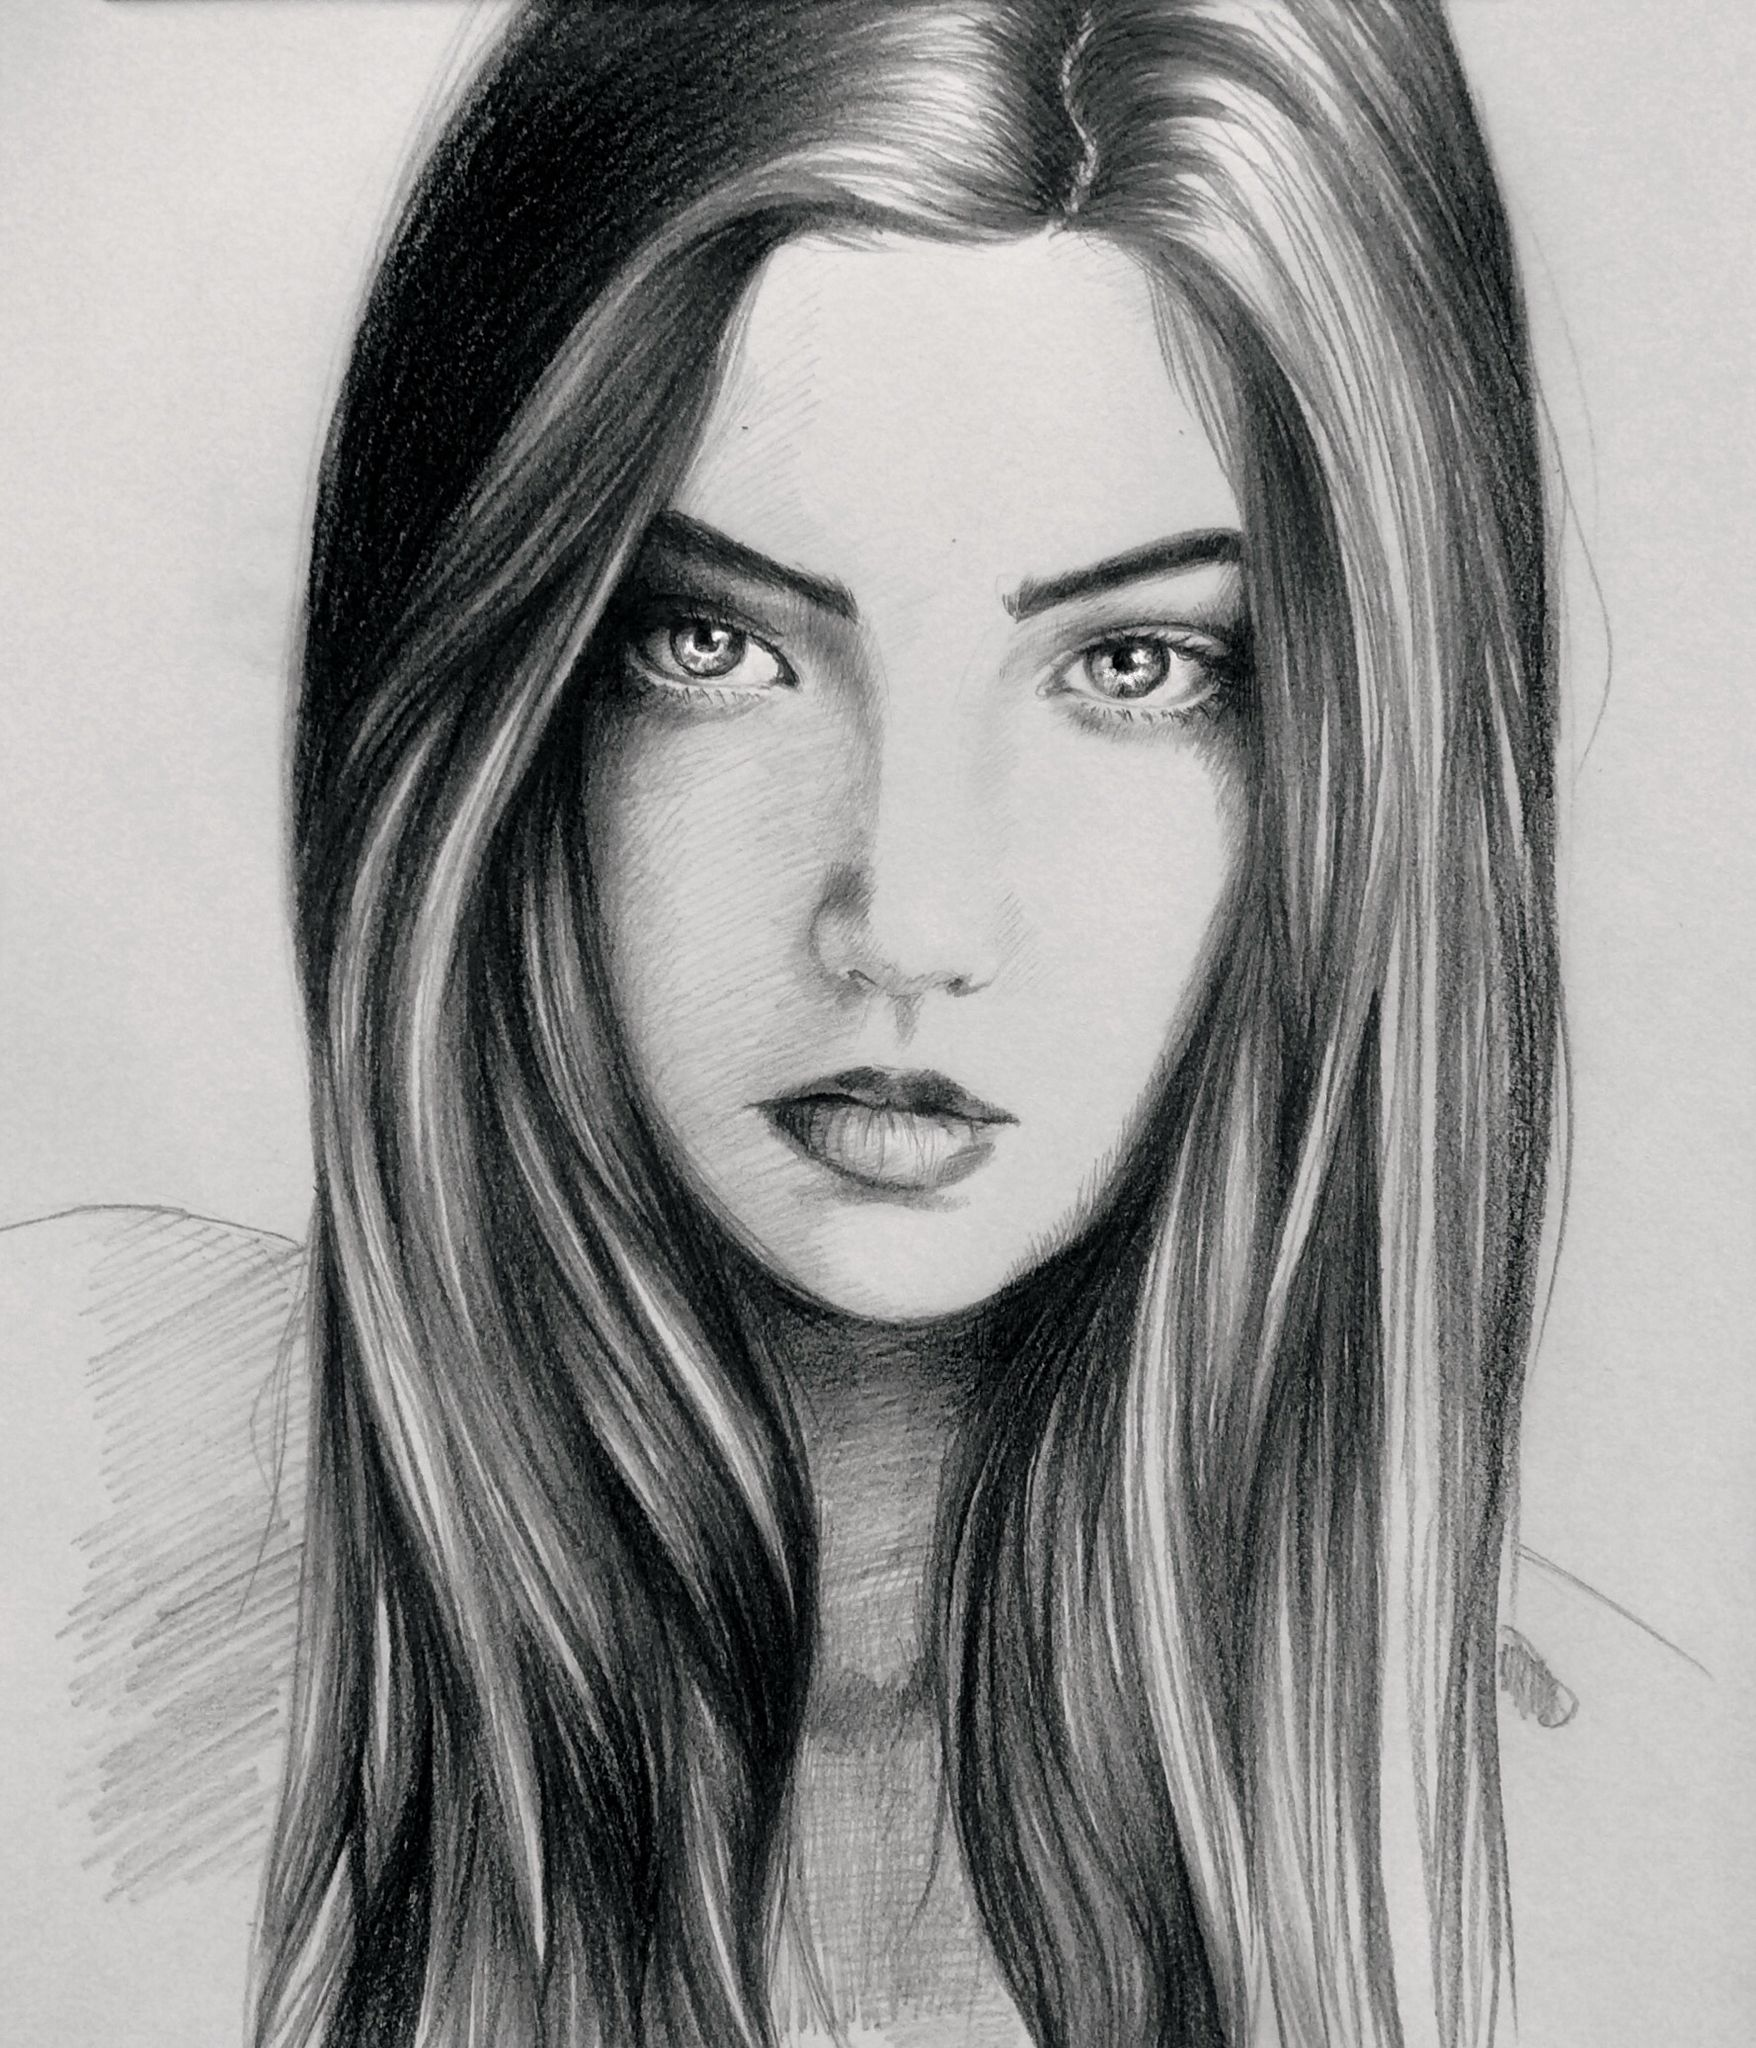 Portrait sketch of a beautiful girl art sketch drawing beautiful hair eyes makeup portrait woman